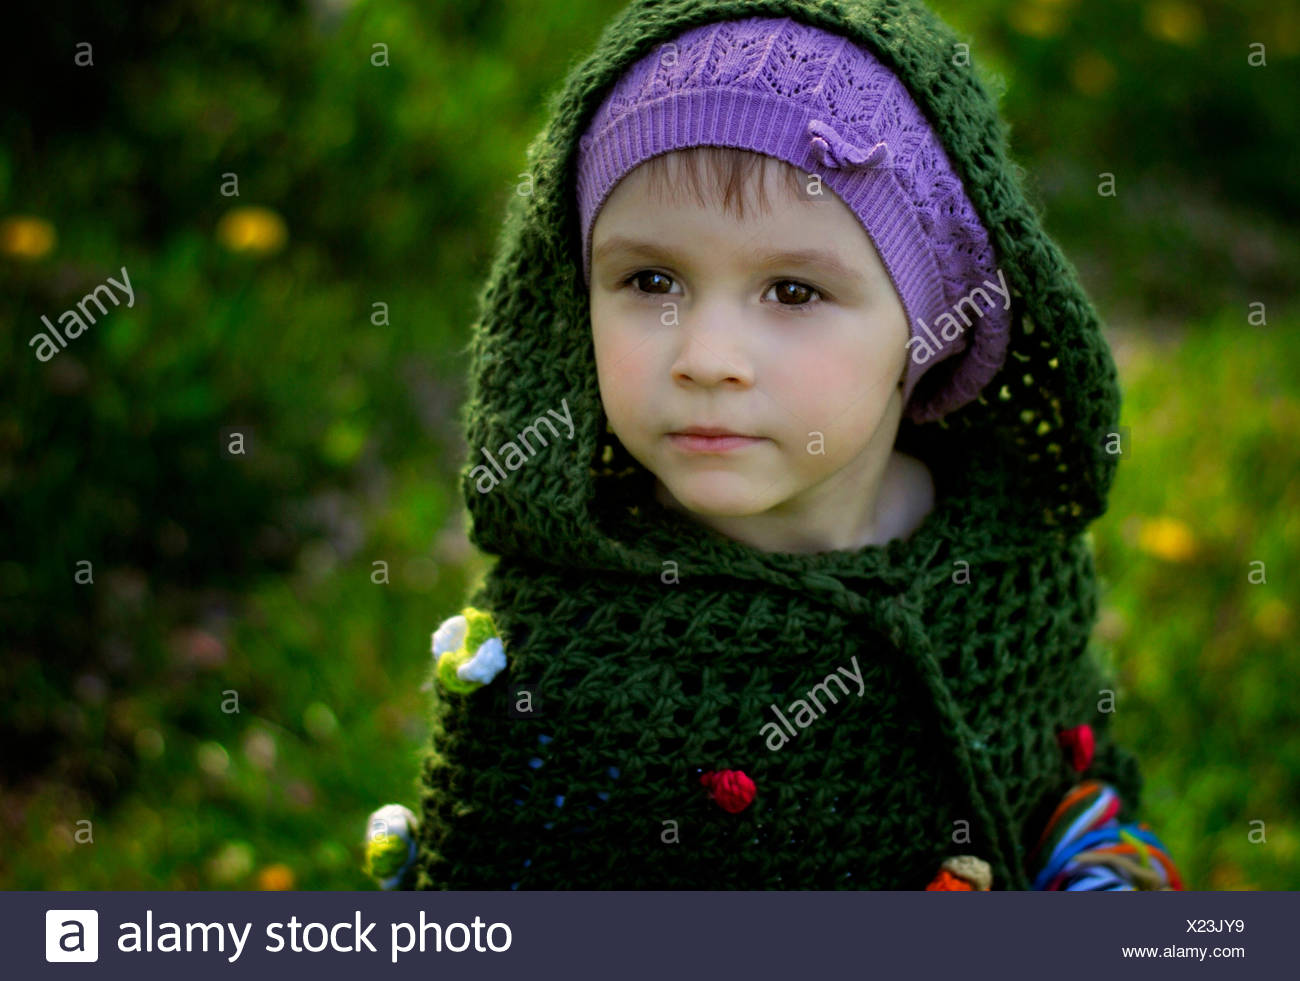 Young girl wearing green hooded top - Stock Image